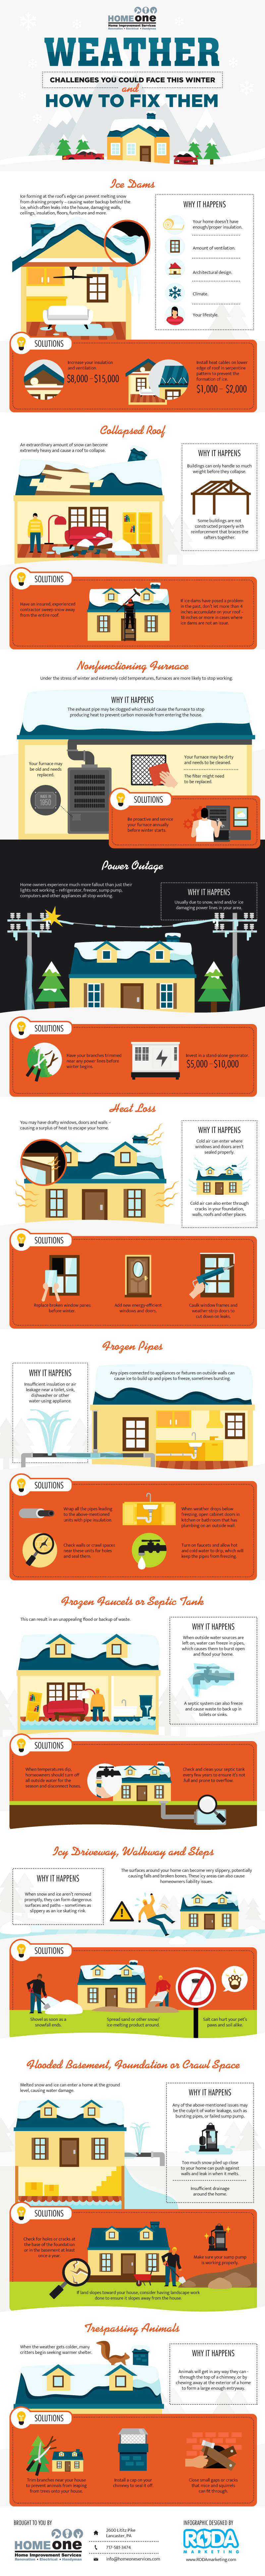 HomeOneServices.com_Infographic_October2015